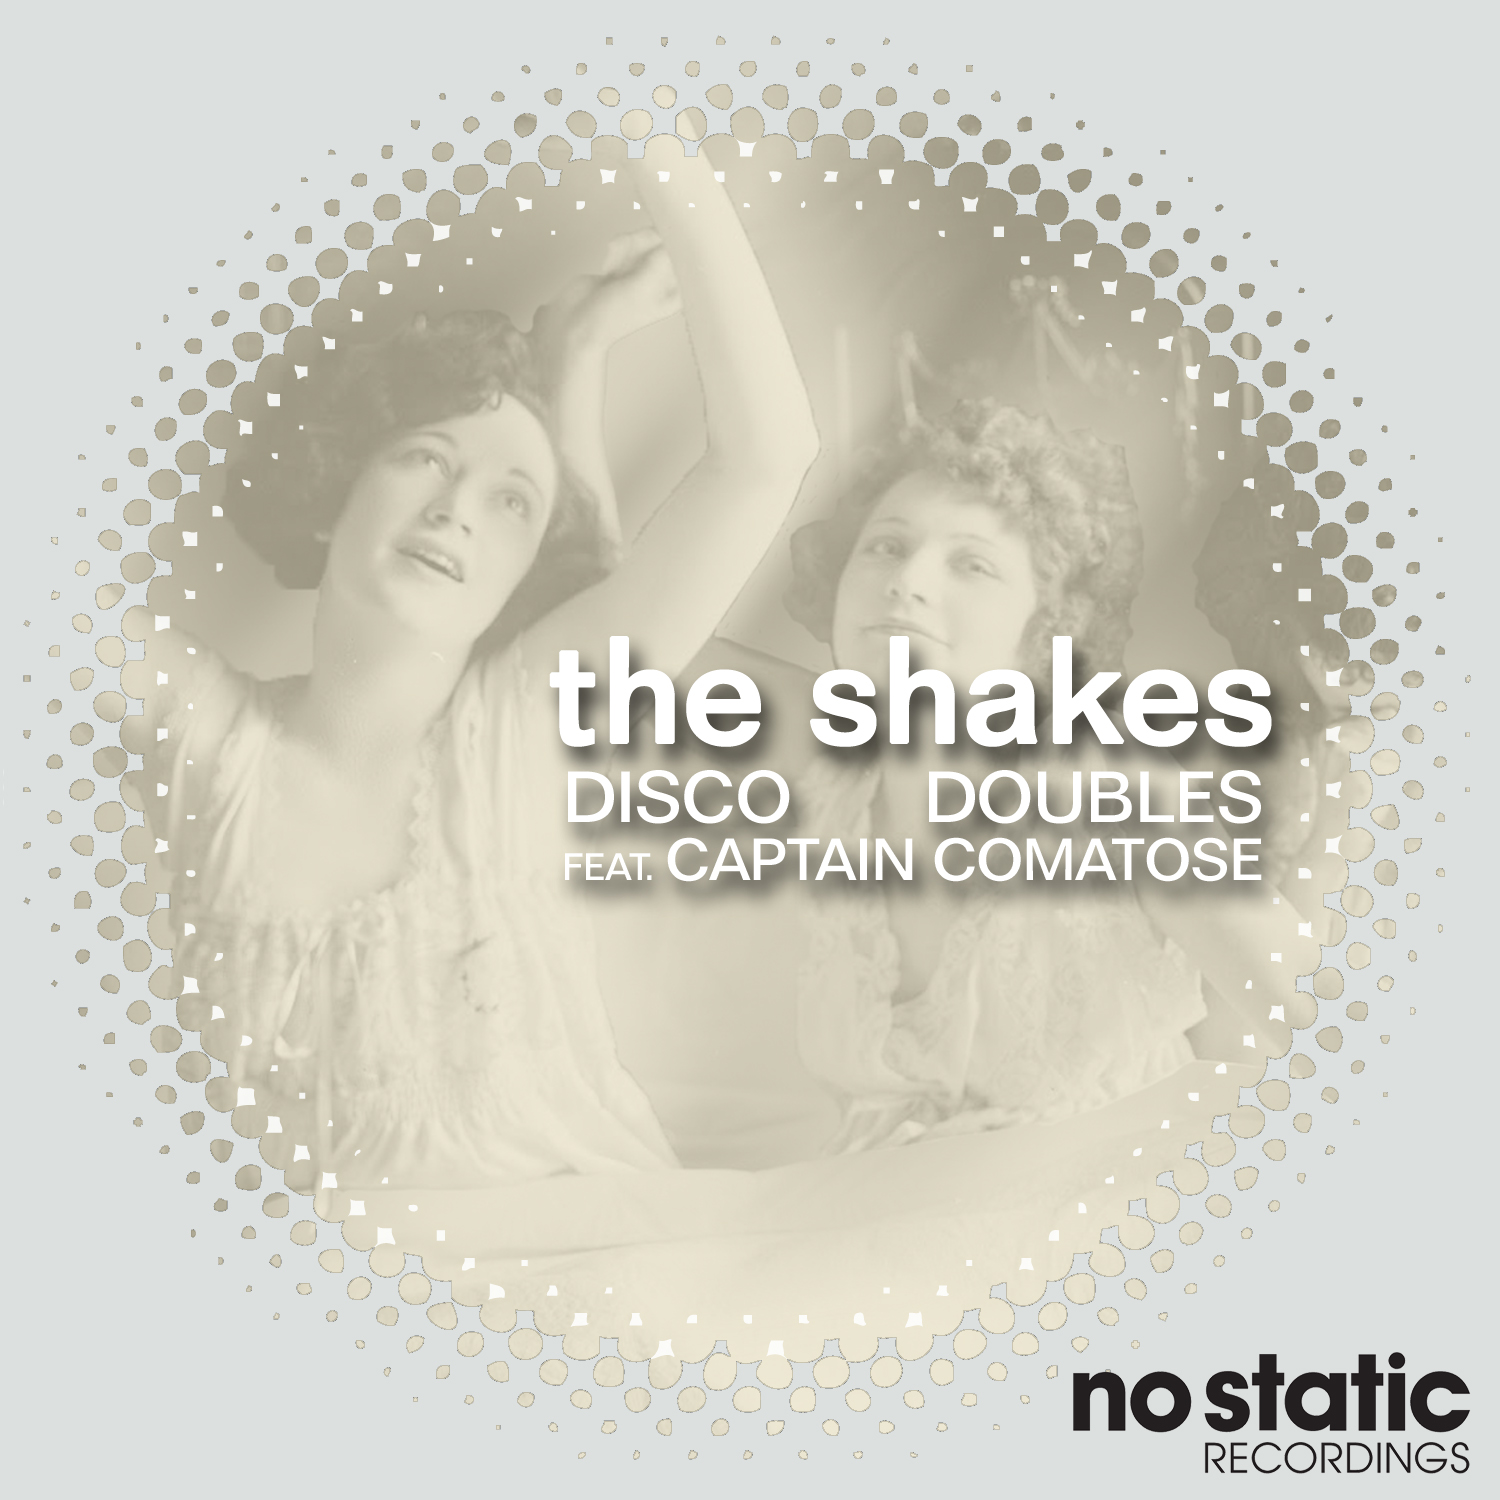 Disco Doubles feat. Captain Comatose - The Shakes (No Static Recordings) - cover